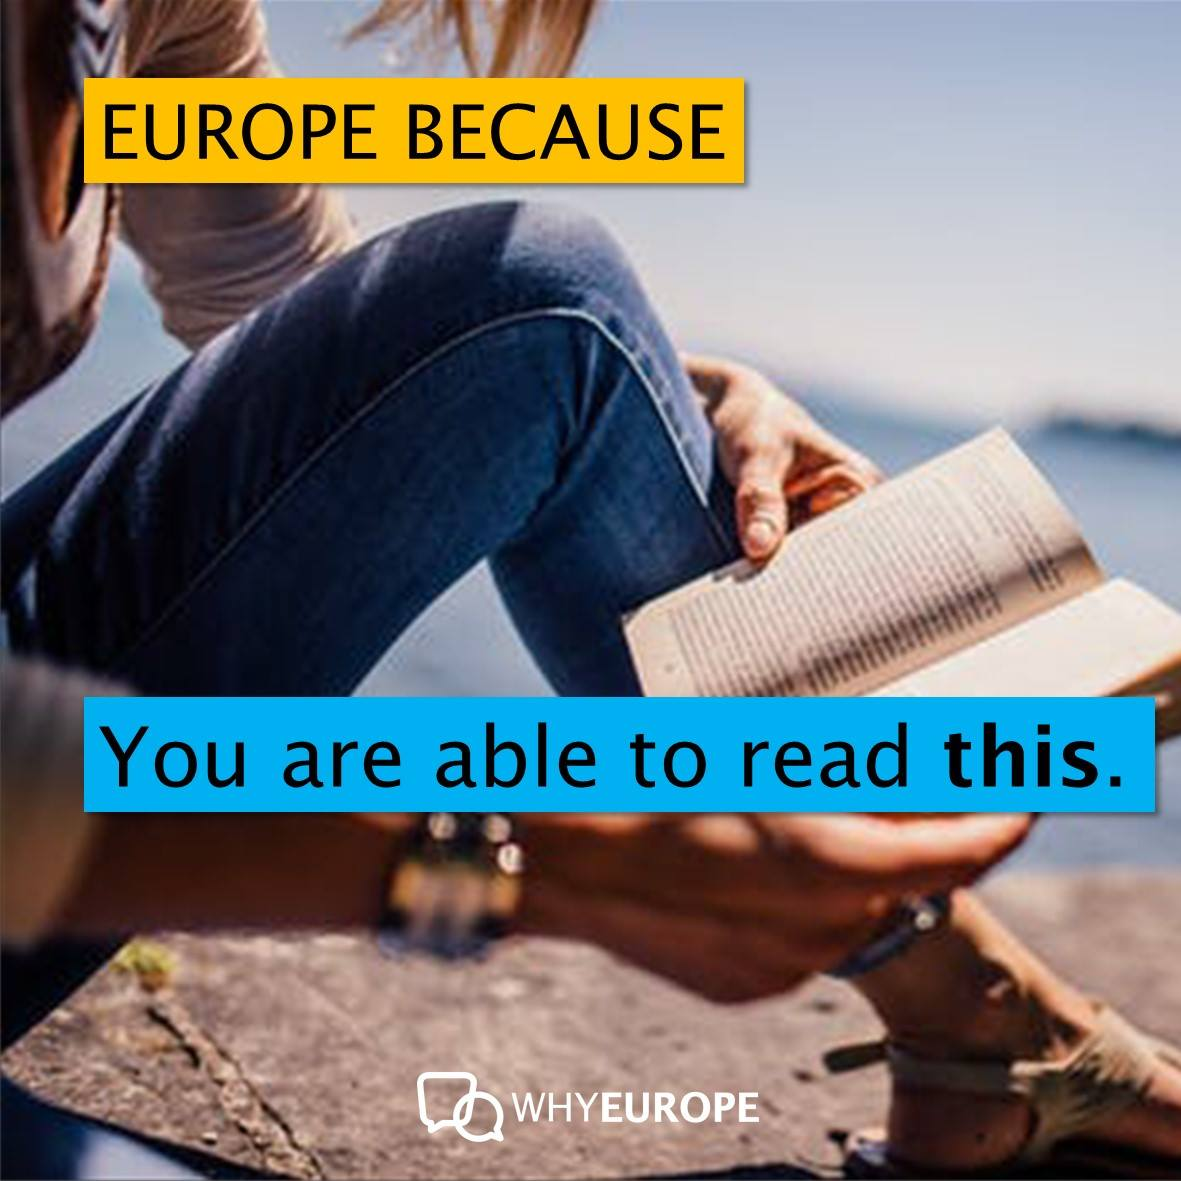 The #EU is working with the member states to ensures that #education is not a privilege.  https://www. facebook.com/WhyEuropeORG/p hotos/a.1790392157846365.1073741827.1790357474516500/1970237646528481/?type=3&amp;theater&amp;notif_t=like&amp;notif_id=1500992963107630 &nbsp; … <br>http://pic.twitter.com/l7fxQPfolU